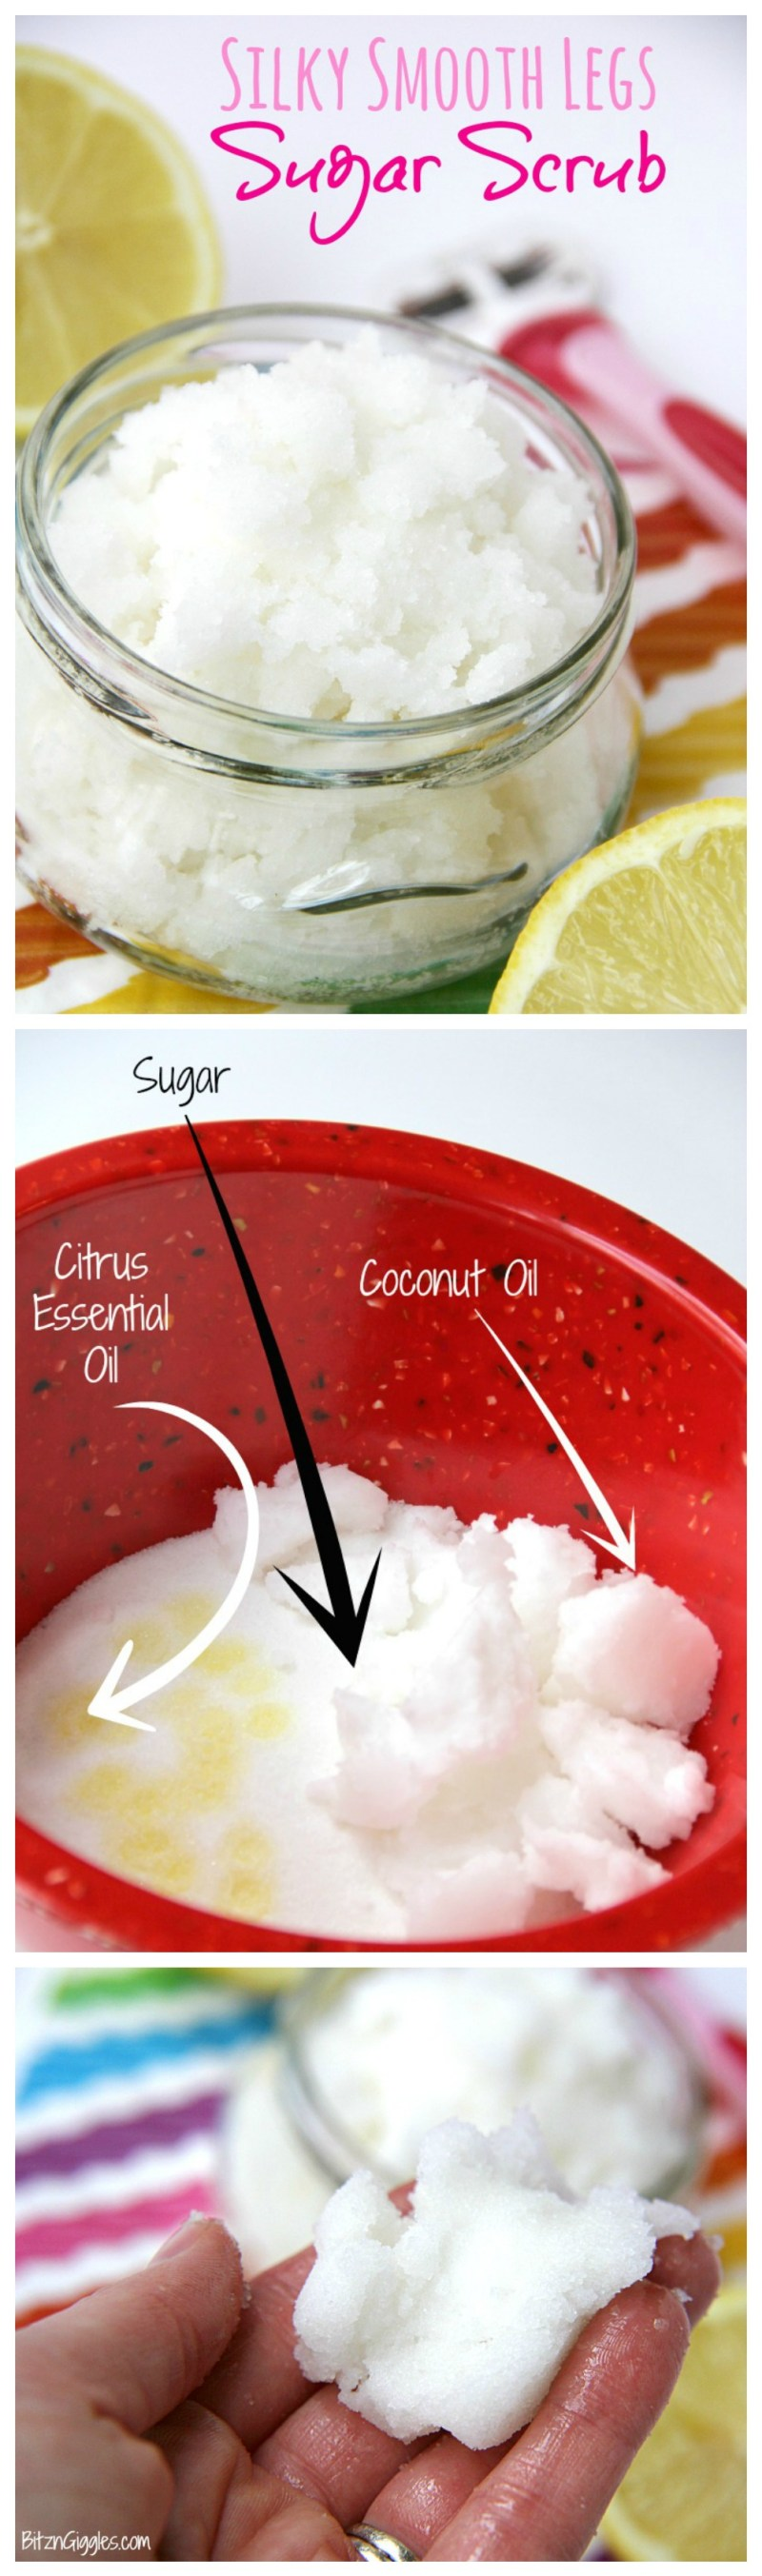 Silky Smooth Legs Sugar Scrub - Apply a small amount of this scrub before shaving for silky, smooth legs year round!